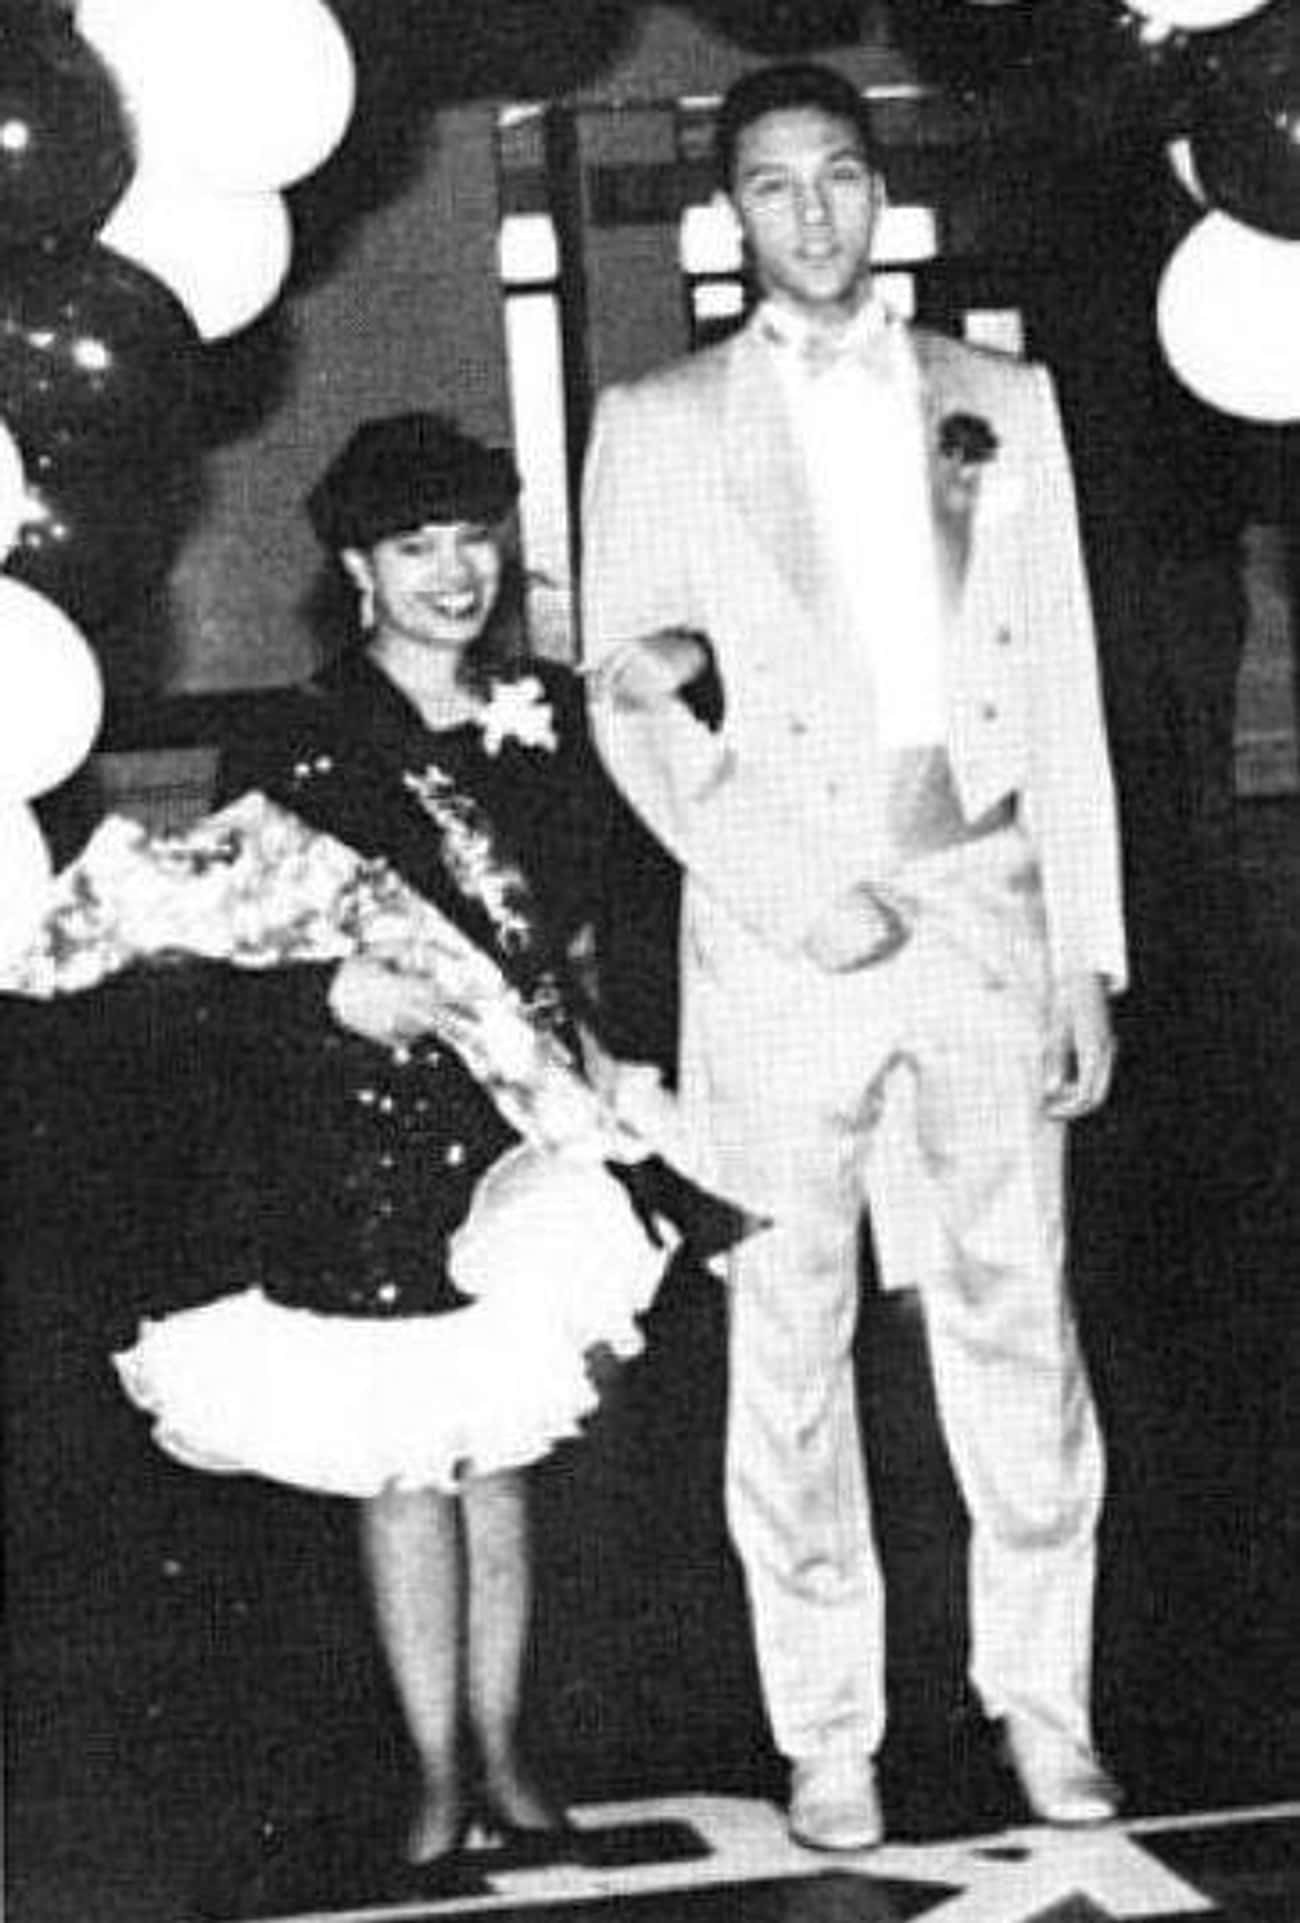 Derek Jeter Hits a Prom Home R is listed (or ranked) 4 on the list Athlete Prom Photos That Prove We All Had an Awkward Phase